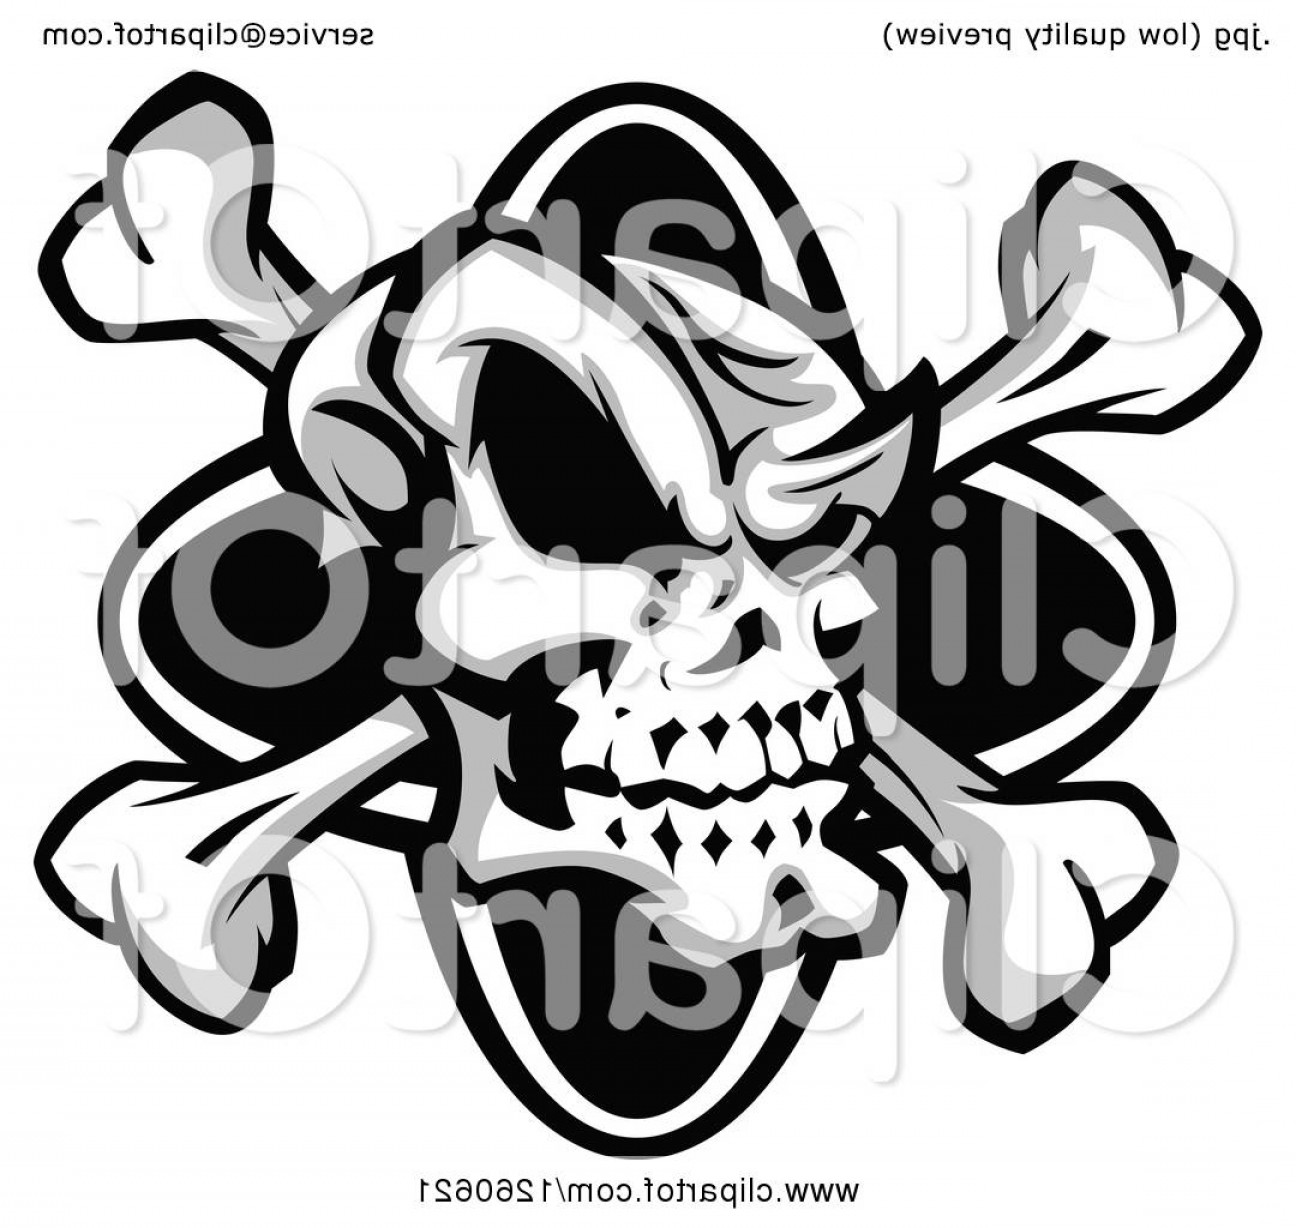 Skull ND Crossbones Vector: Grinning Grayscale Skull And Crossbones